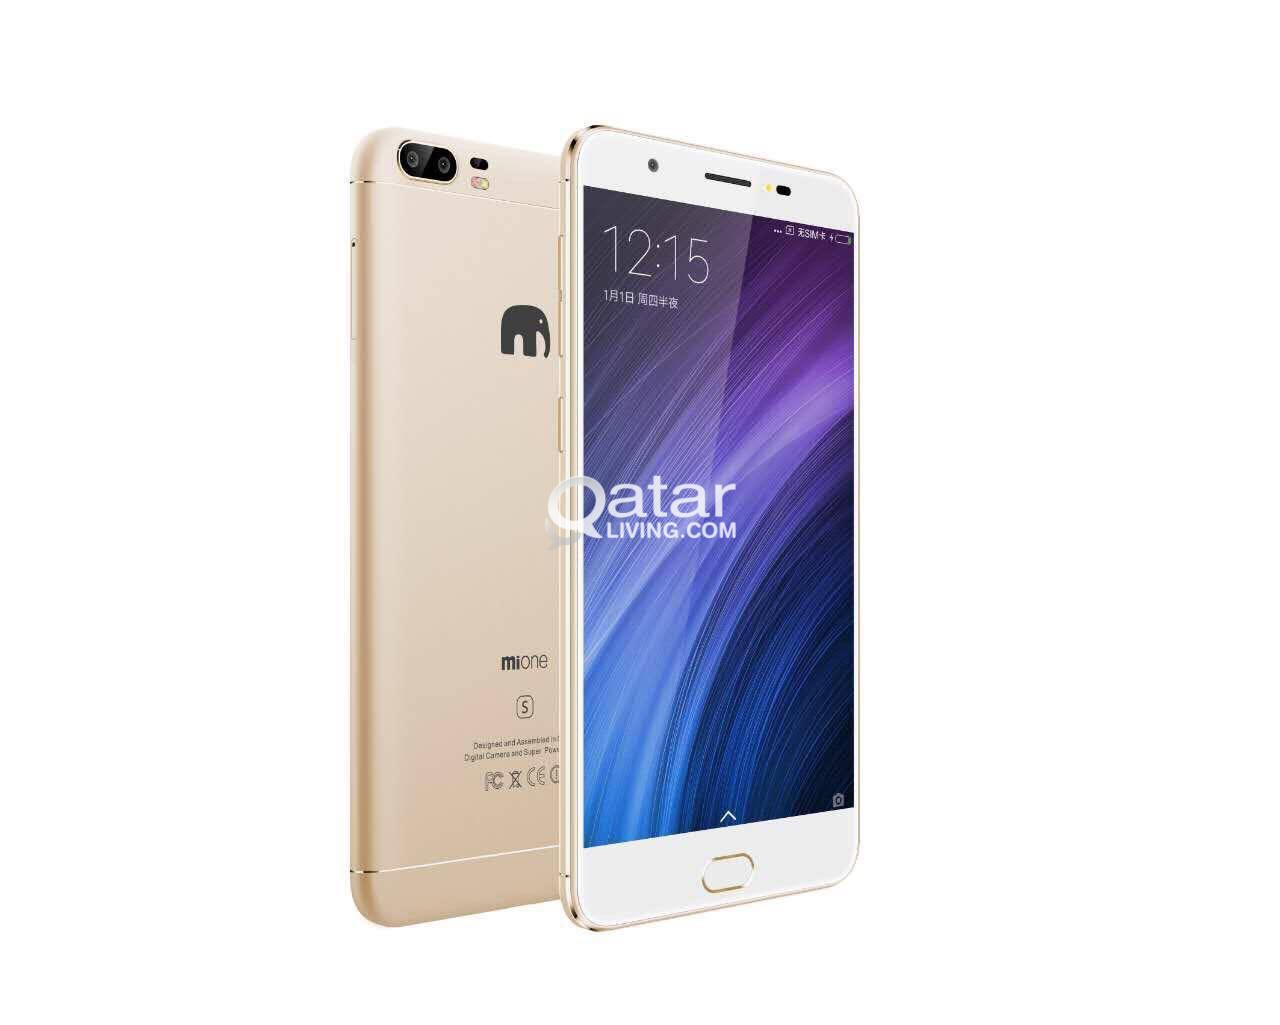 brand new mione x8 pro android smart phone 3gb ram 32gb memory